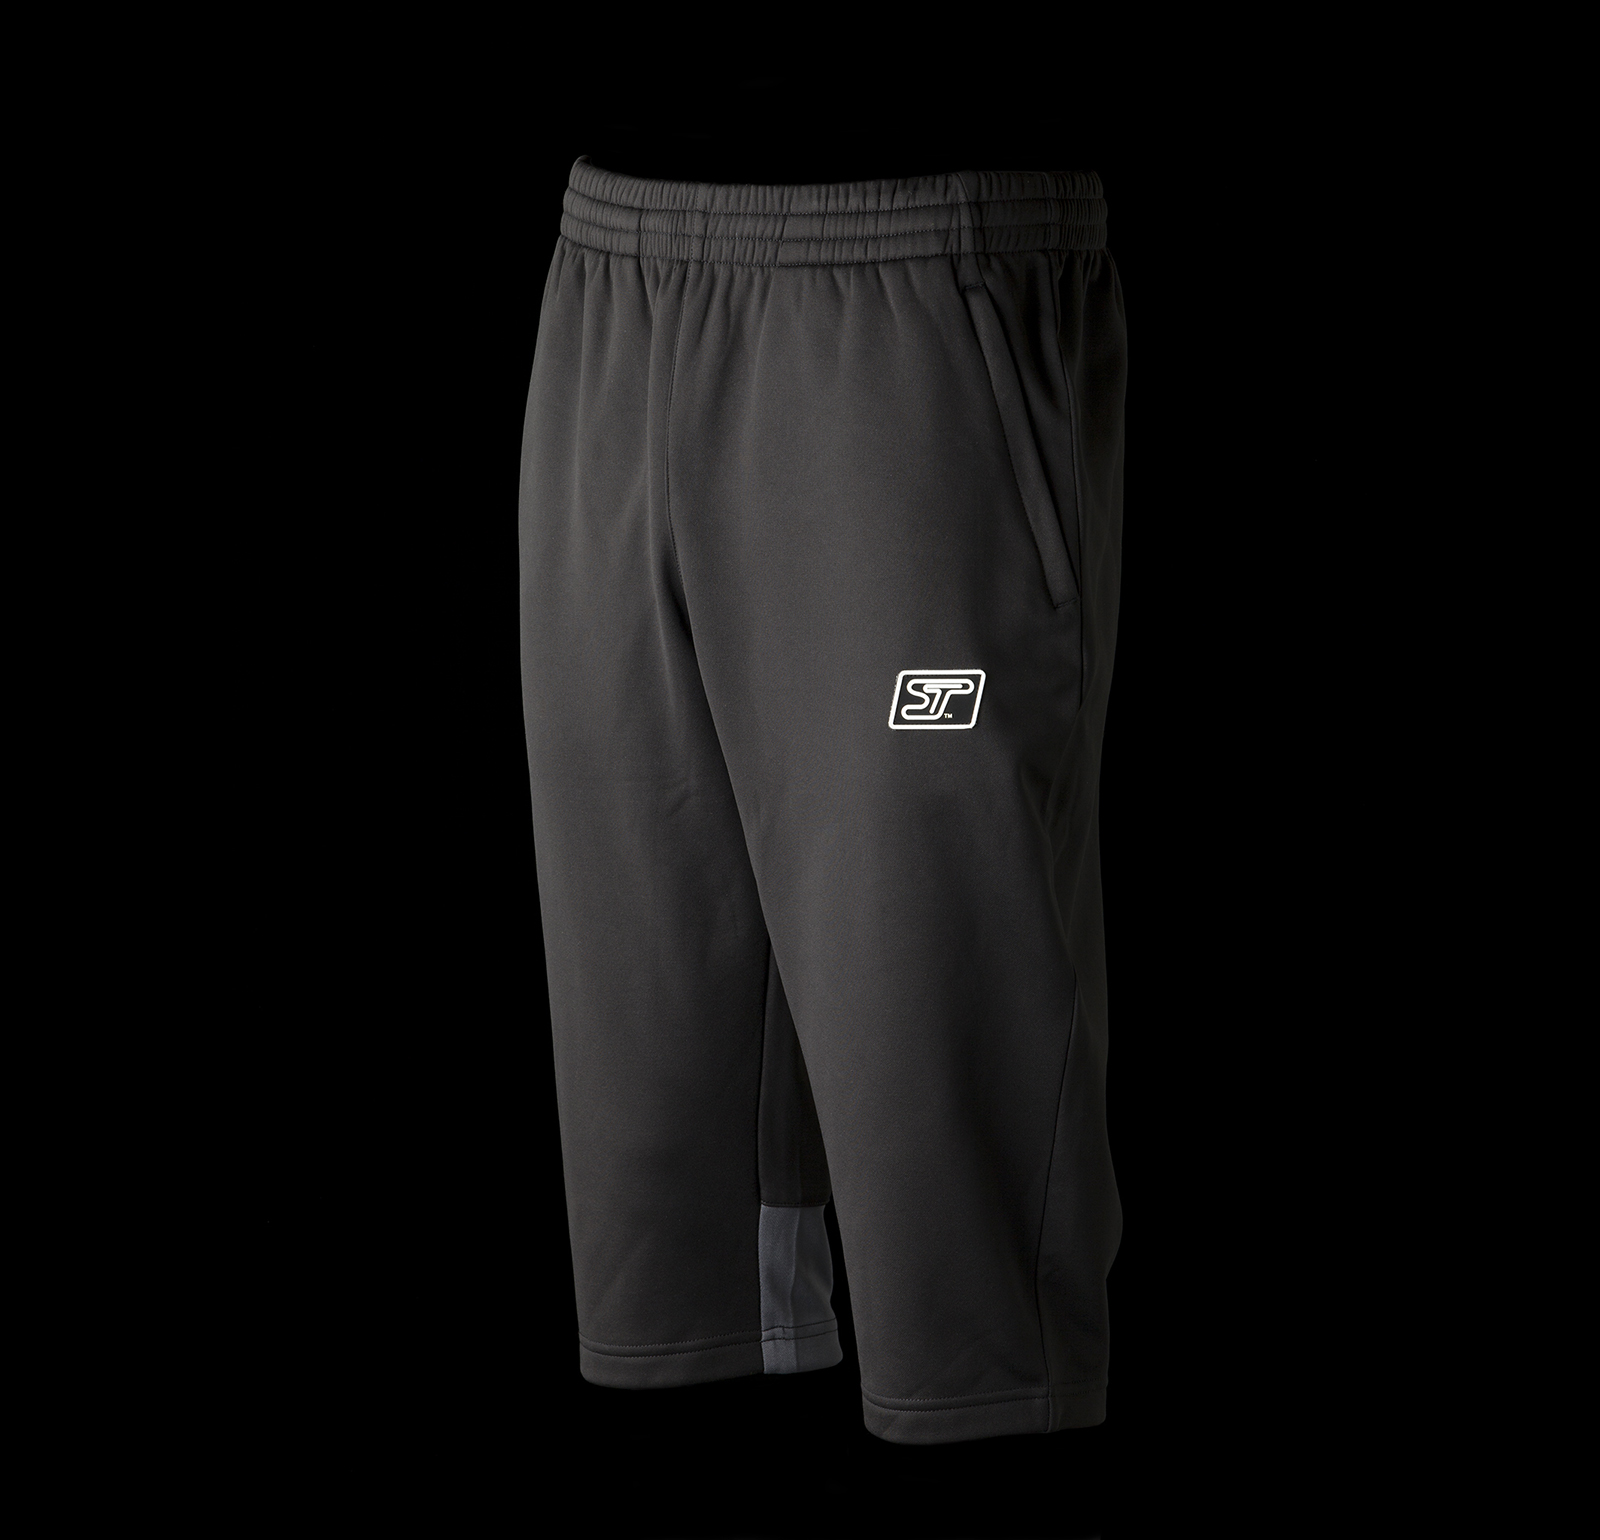 excel-3-4-pant-promo-10